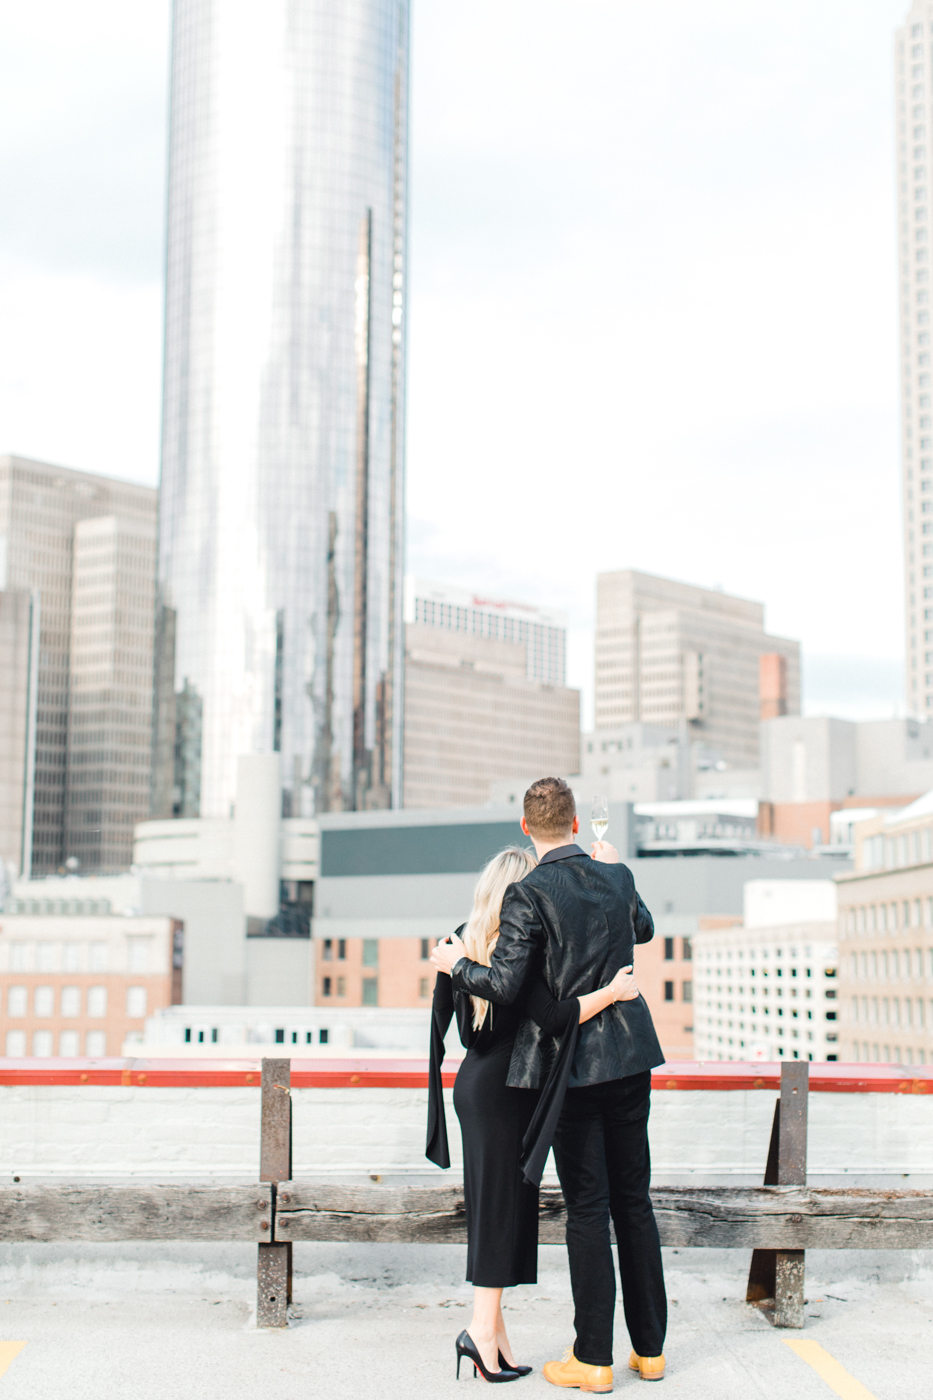 four corners photography best atlanta wedding photographer downtown atlanta engagement session engagement proposal ventanas downtown atlanta wedding atlanta wedding photographer-11.jpg